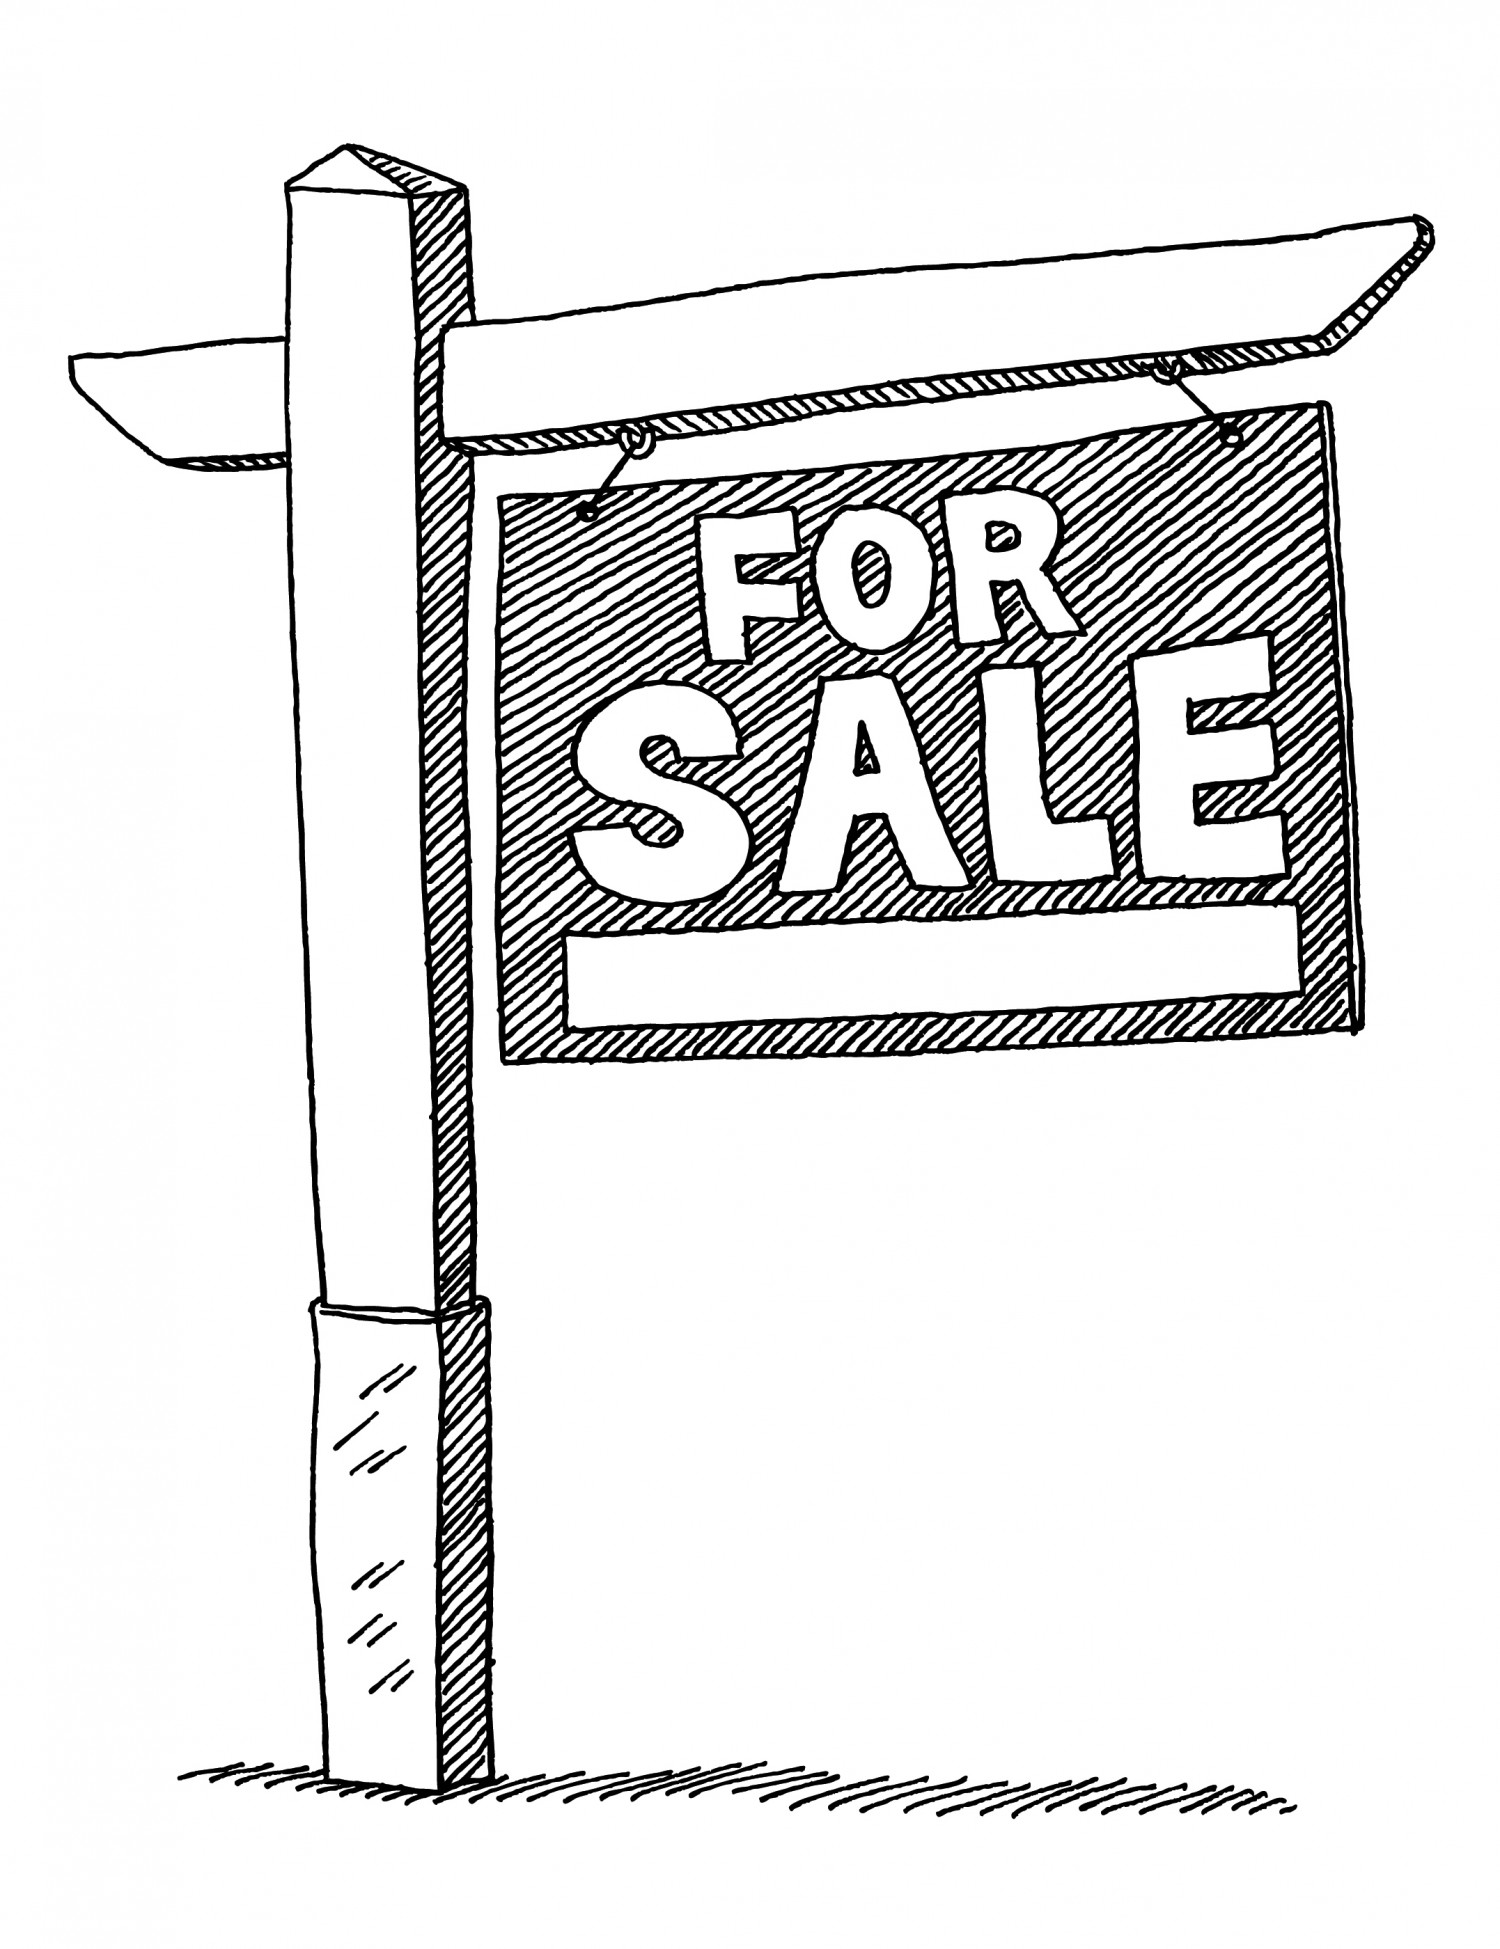 For Sale sign illustration april 2015